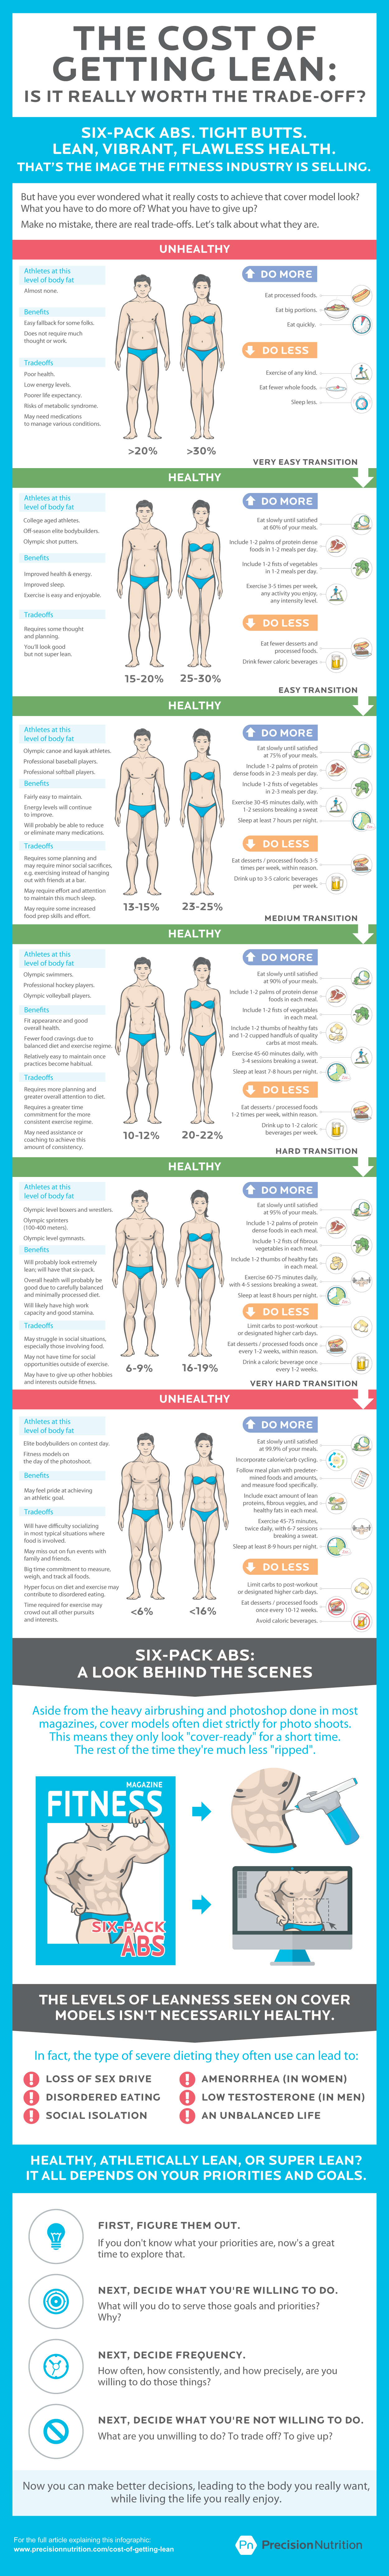 The Cost of Getting Lean #infographic